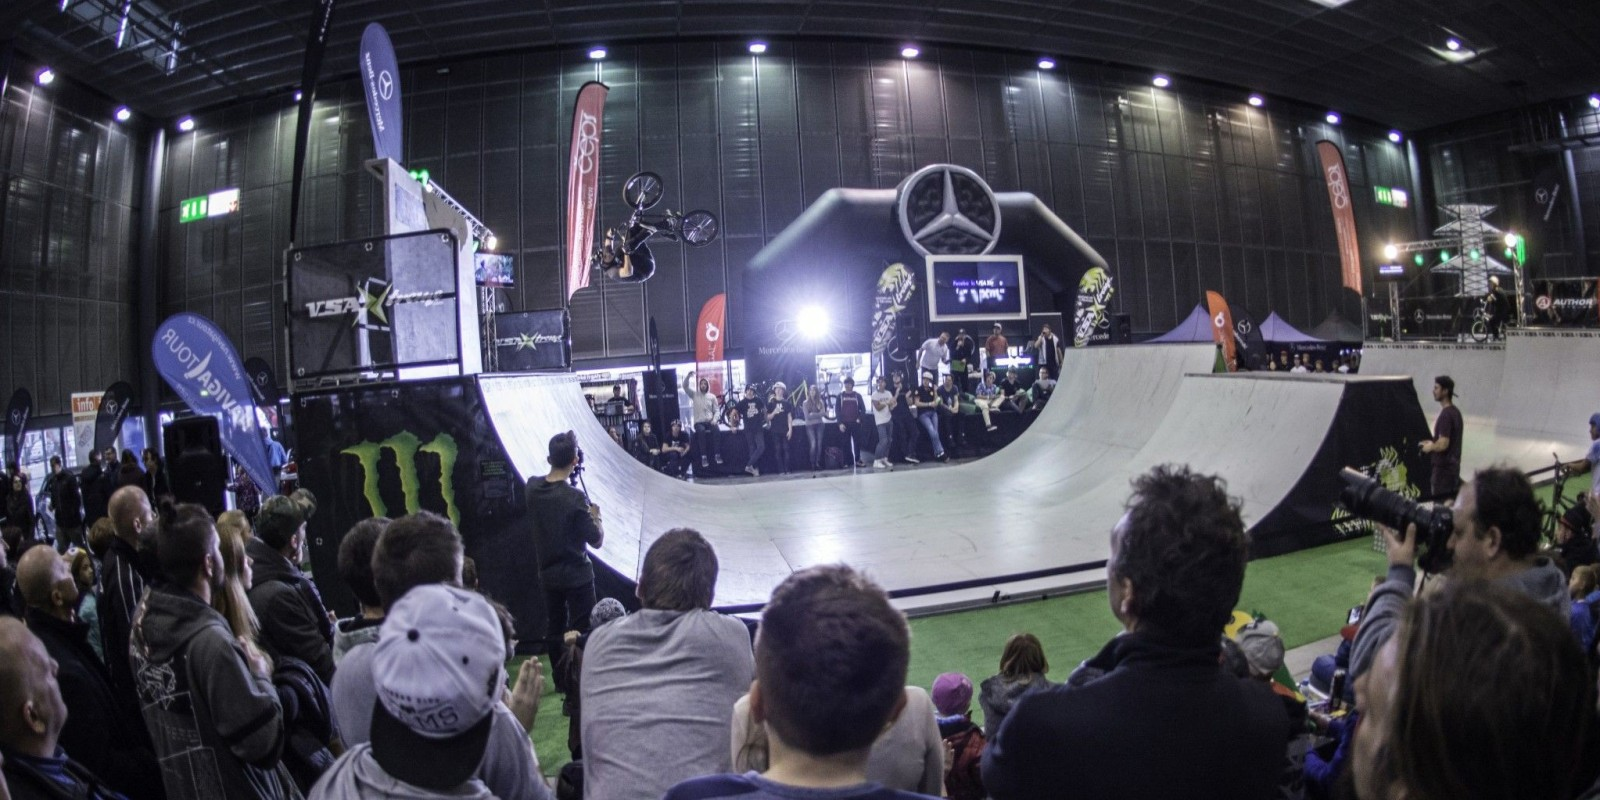 Grand BMX 2016 is a BMX ramp competition taking place in Brno, Czech Republic.